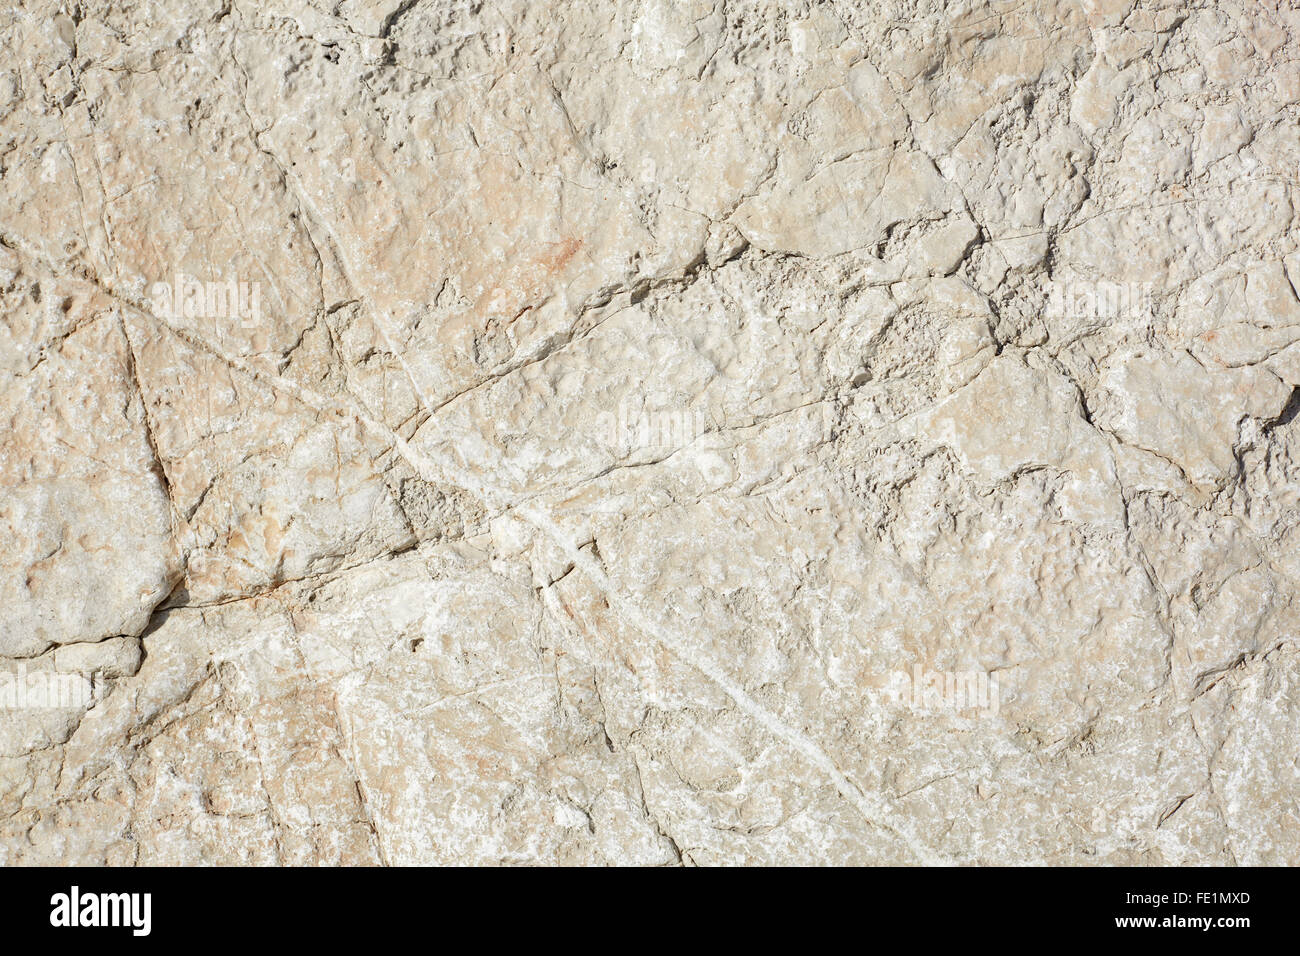 Warm white stone texture background in sunlight - Stock Image